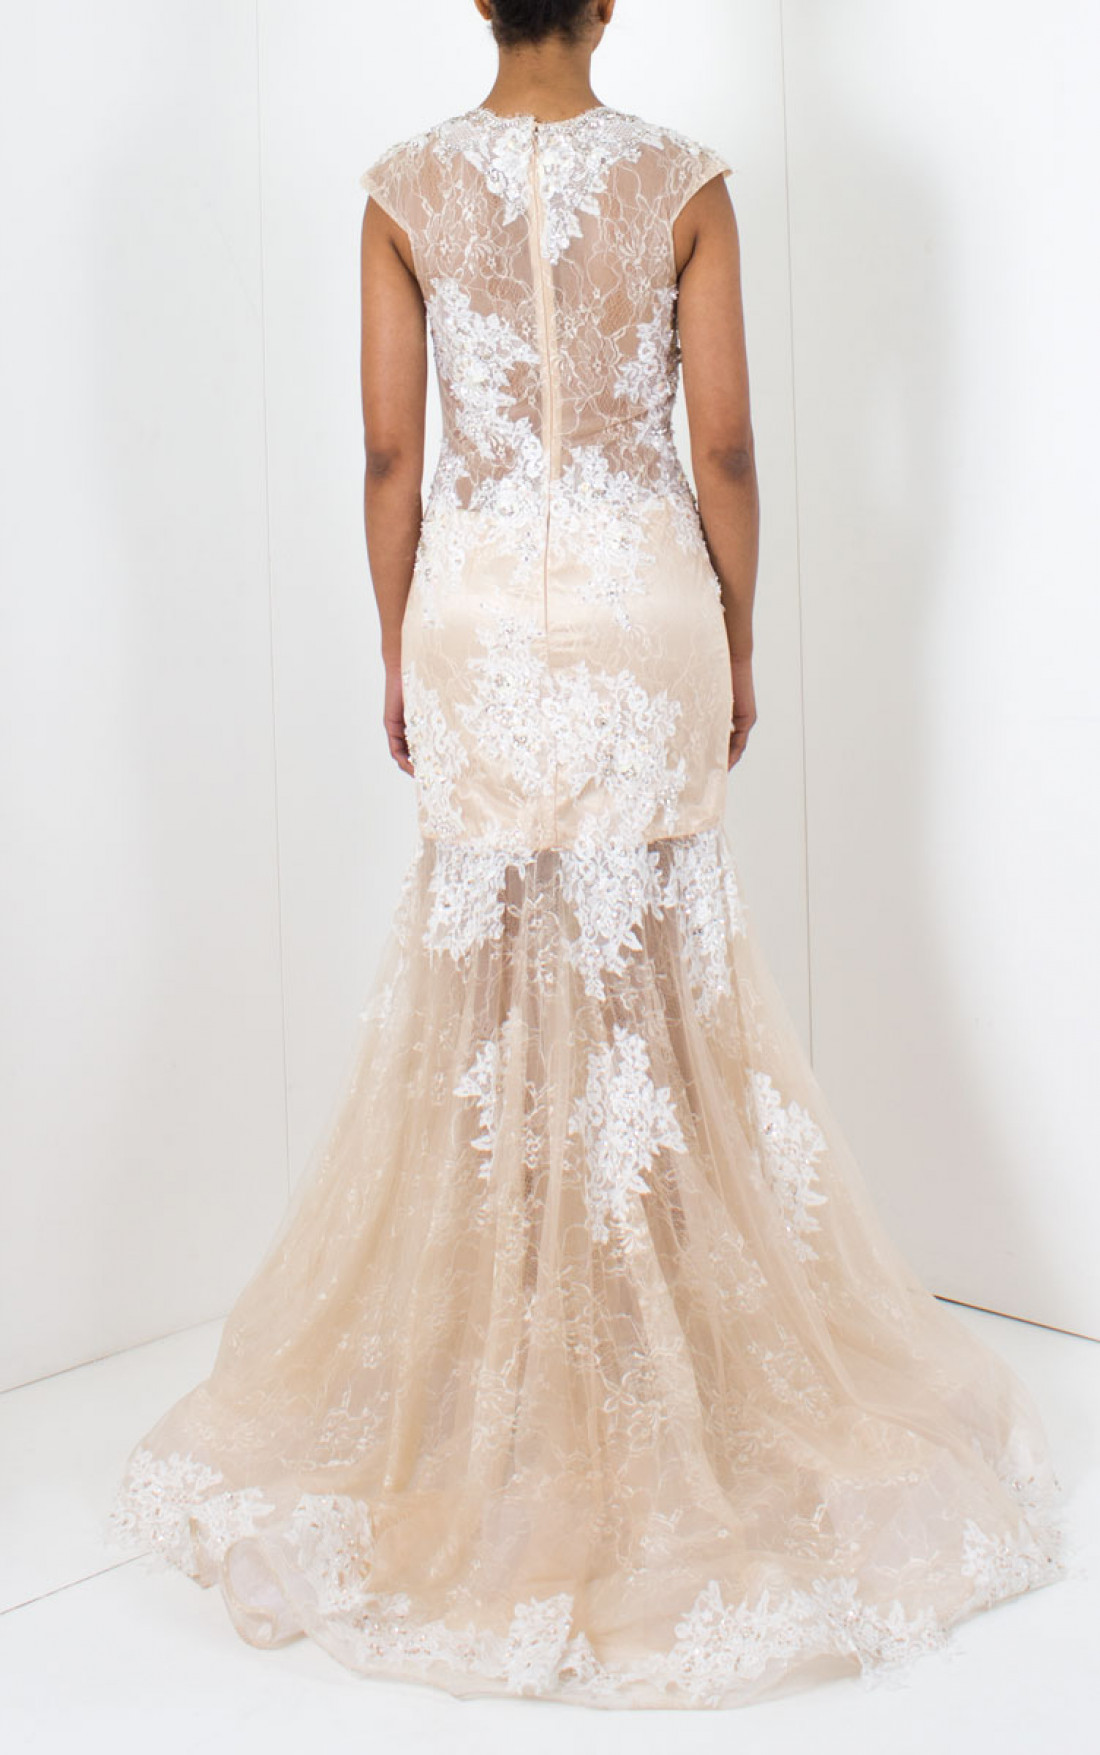 Jovani - Sleeveless Lace Wedding Dress (JB74401A)